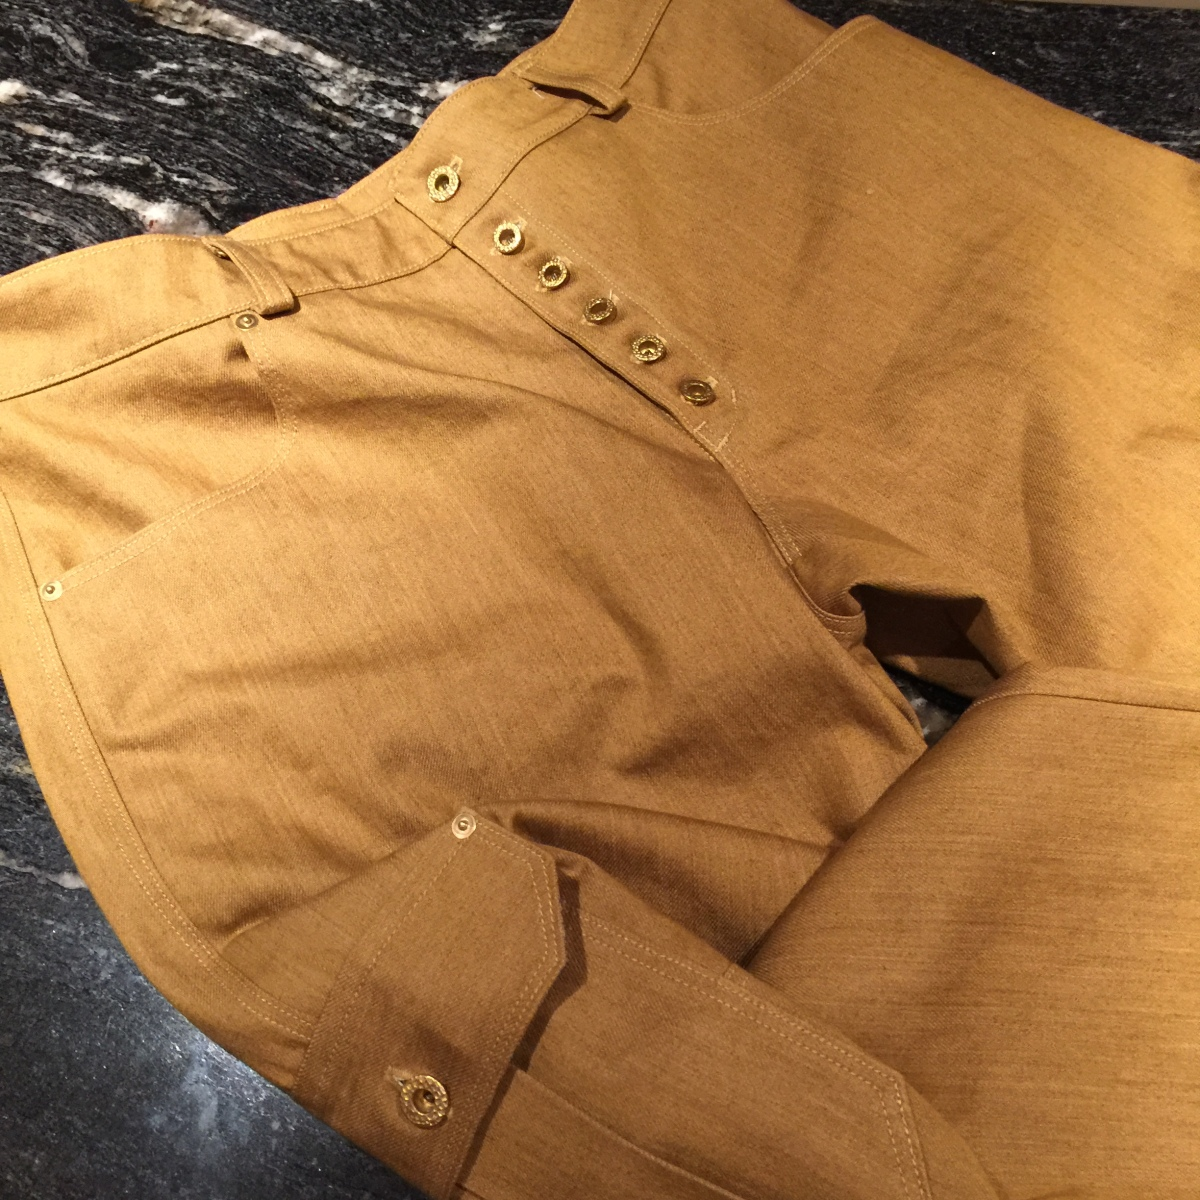 flat lay close up of tan cargo pants highlighting brass hardware and top stitching.